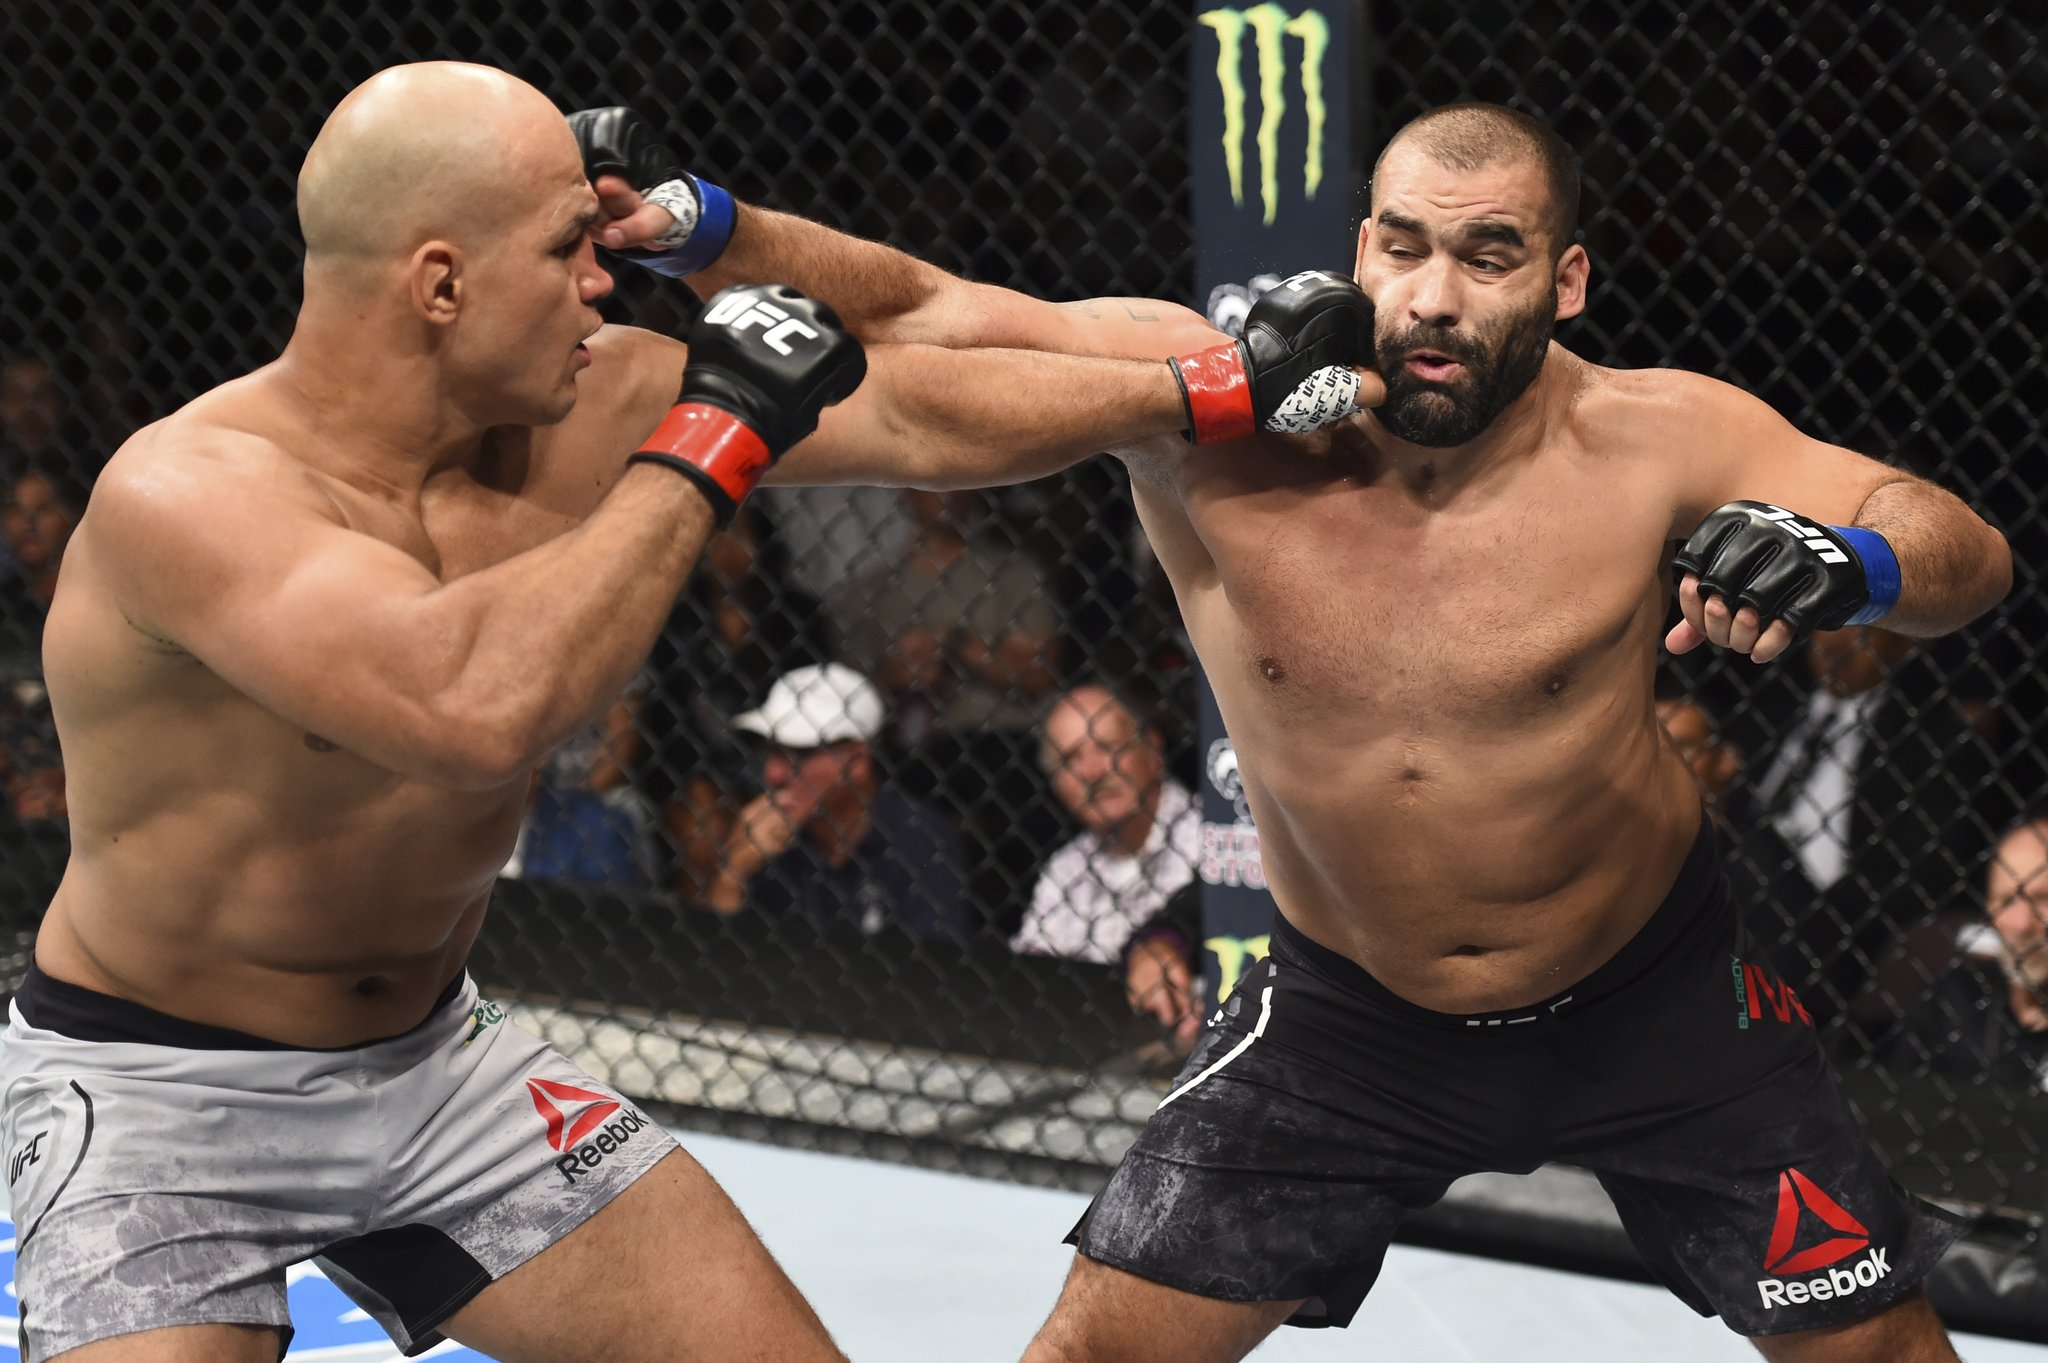 UFC Fight Night 133 Results: Dos Santos Puts on a Striking Performance in His Octagon Return -